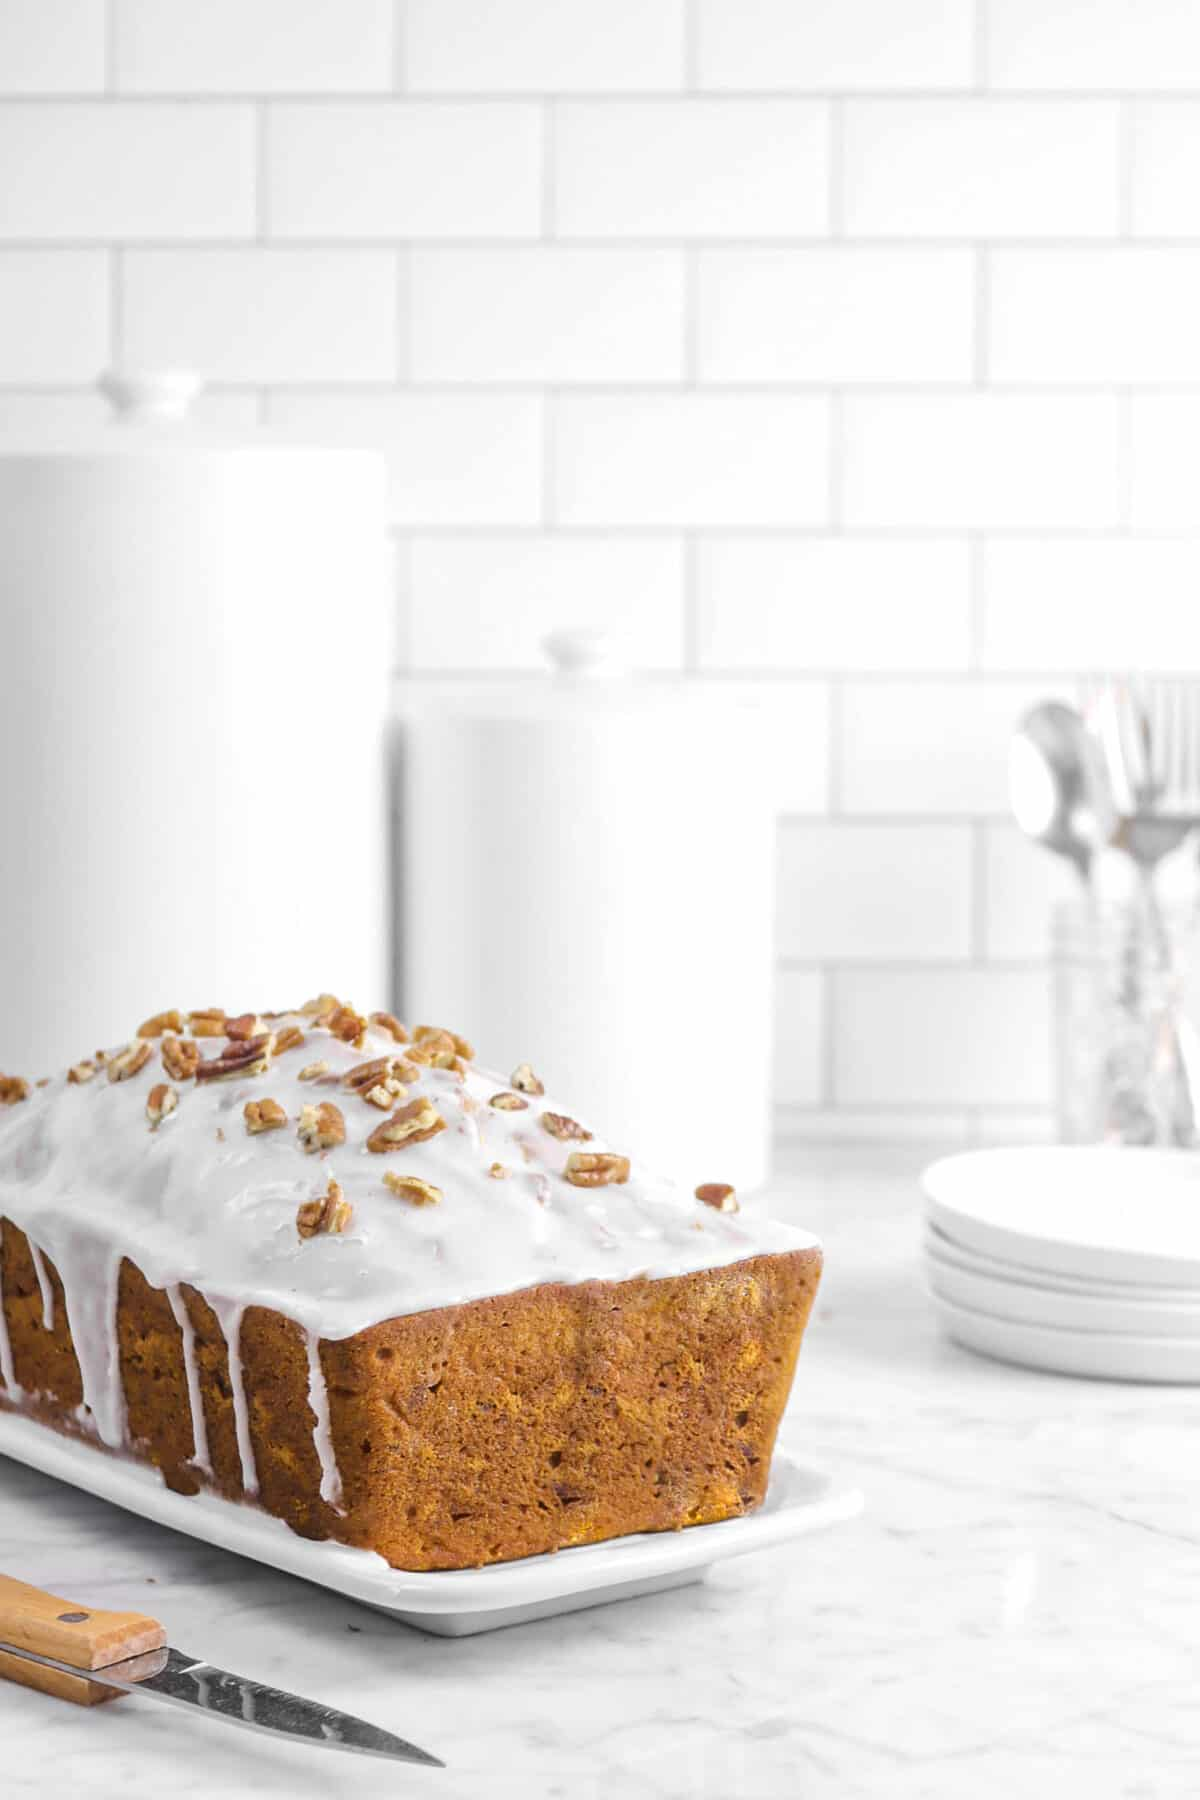 pumpkin bread on a white plate with plates, forks, and jars behind